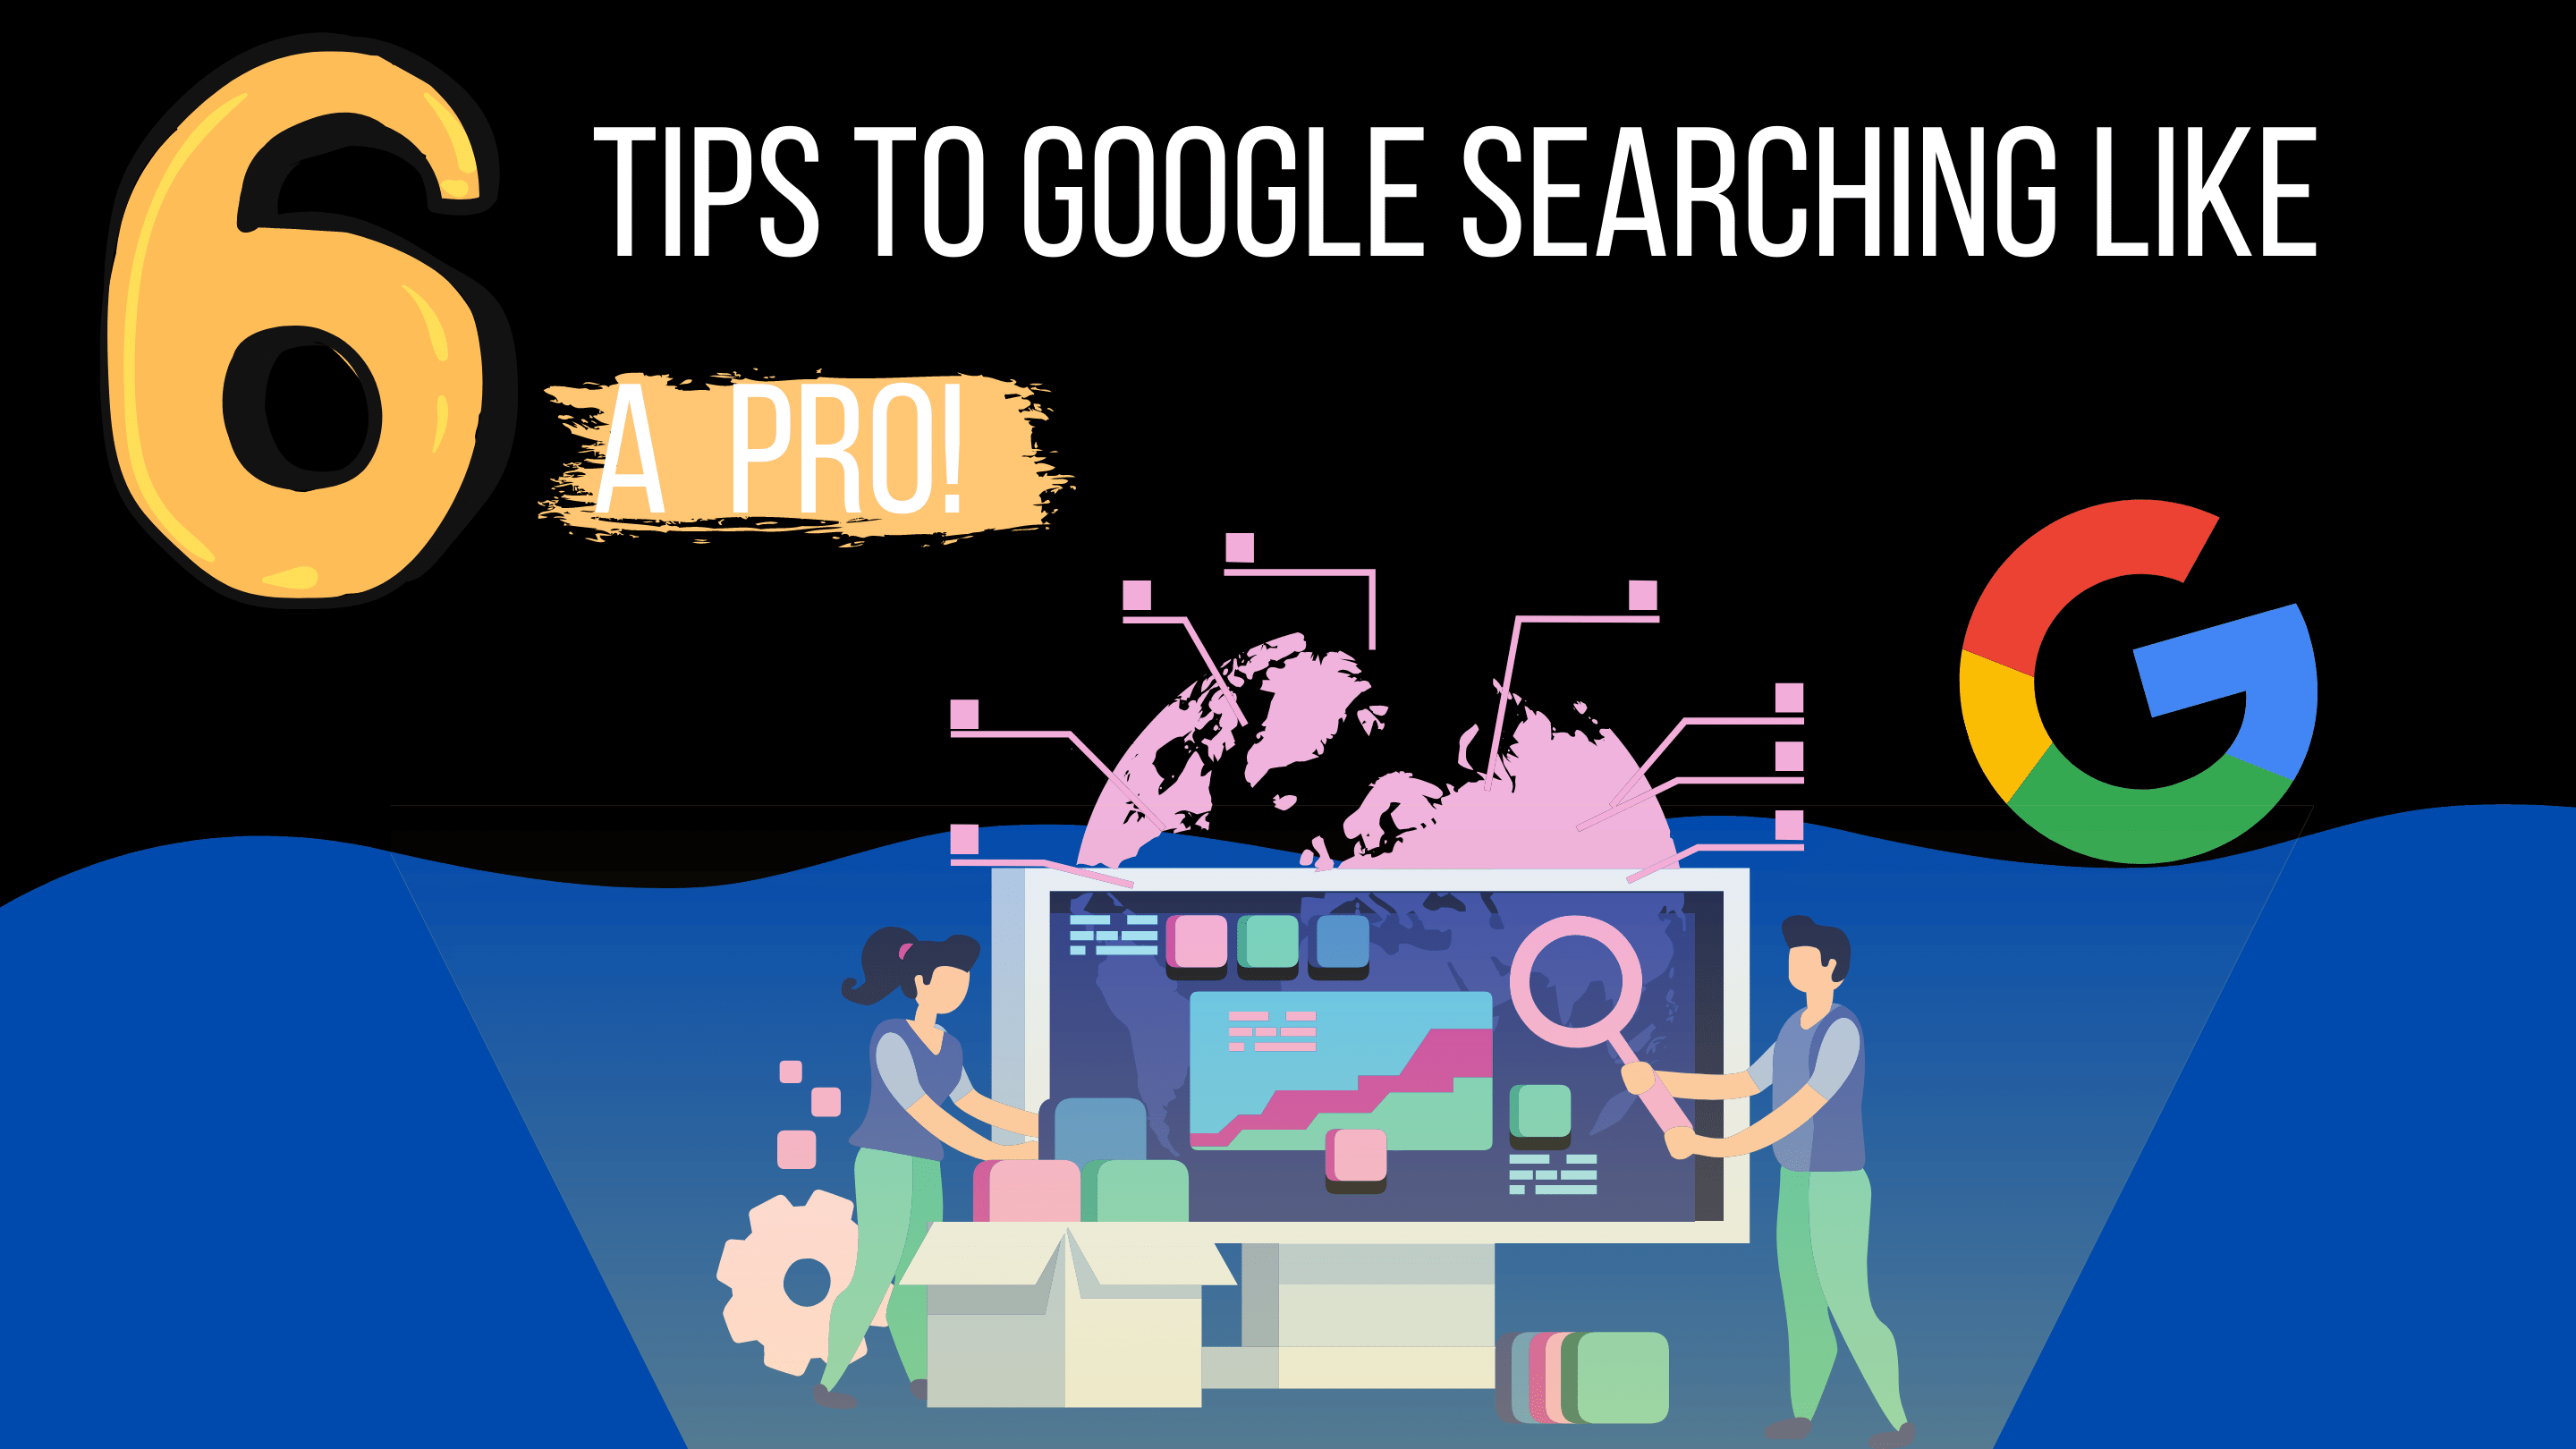 6 Tips to Google searching like a pro